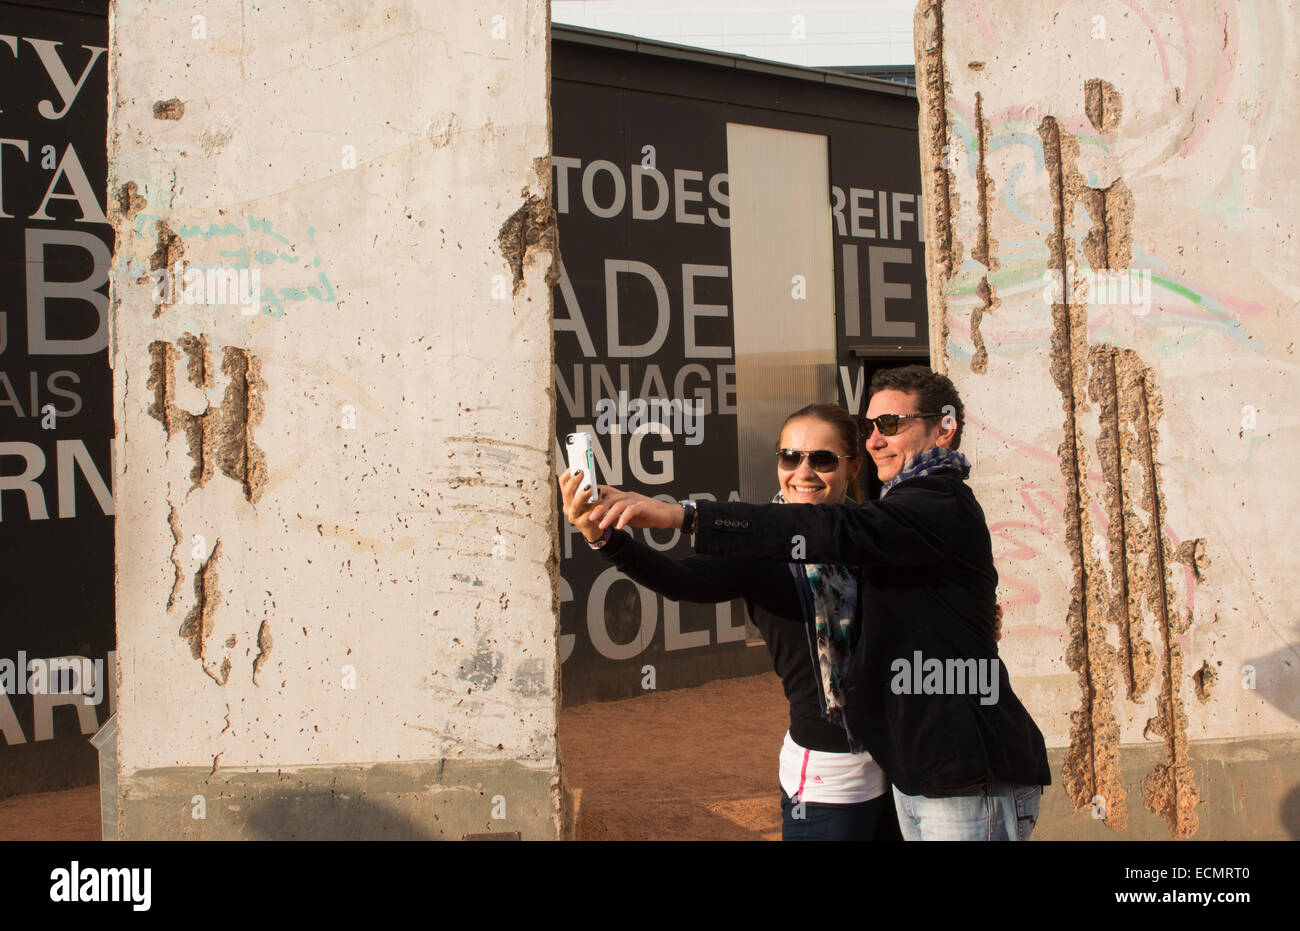 Berlin Germany Checkpoint Charlie museum Berlin Wall pieces tourist couple from Spain taking picture selfie  MR - Stock Image